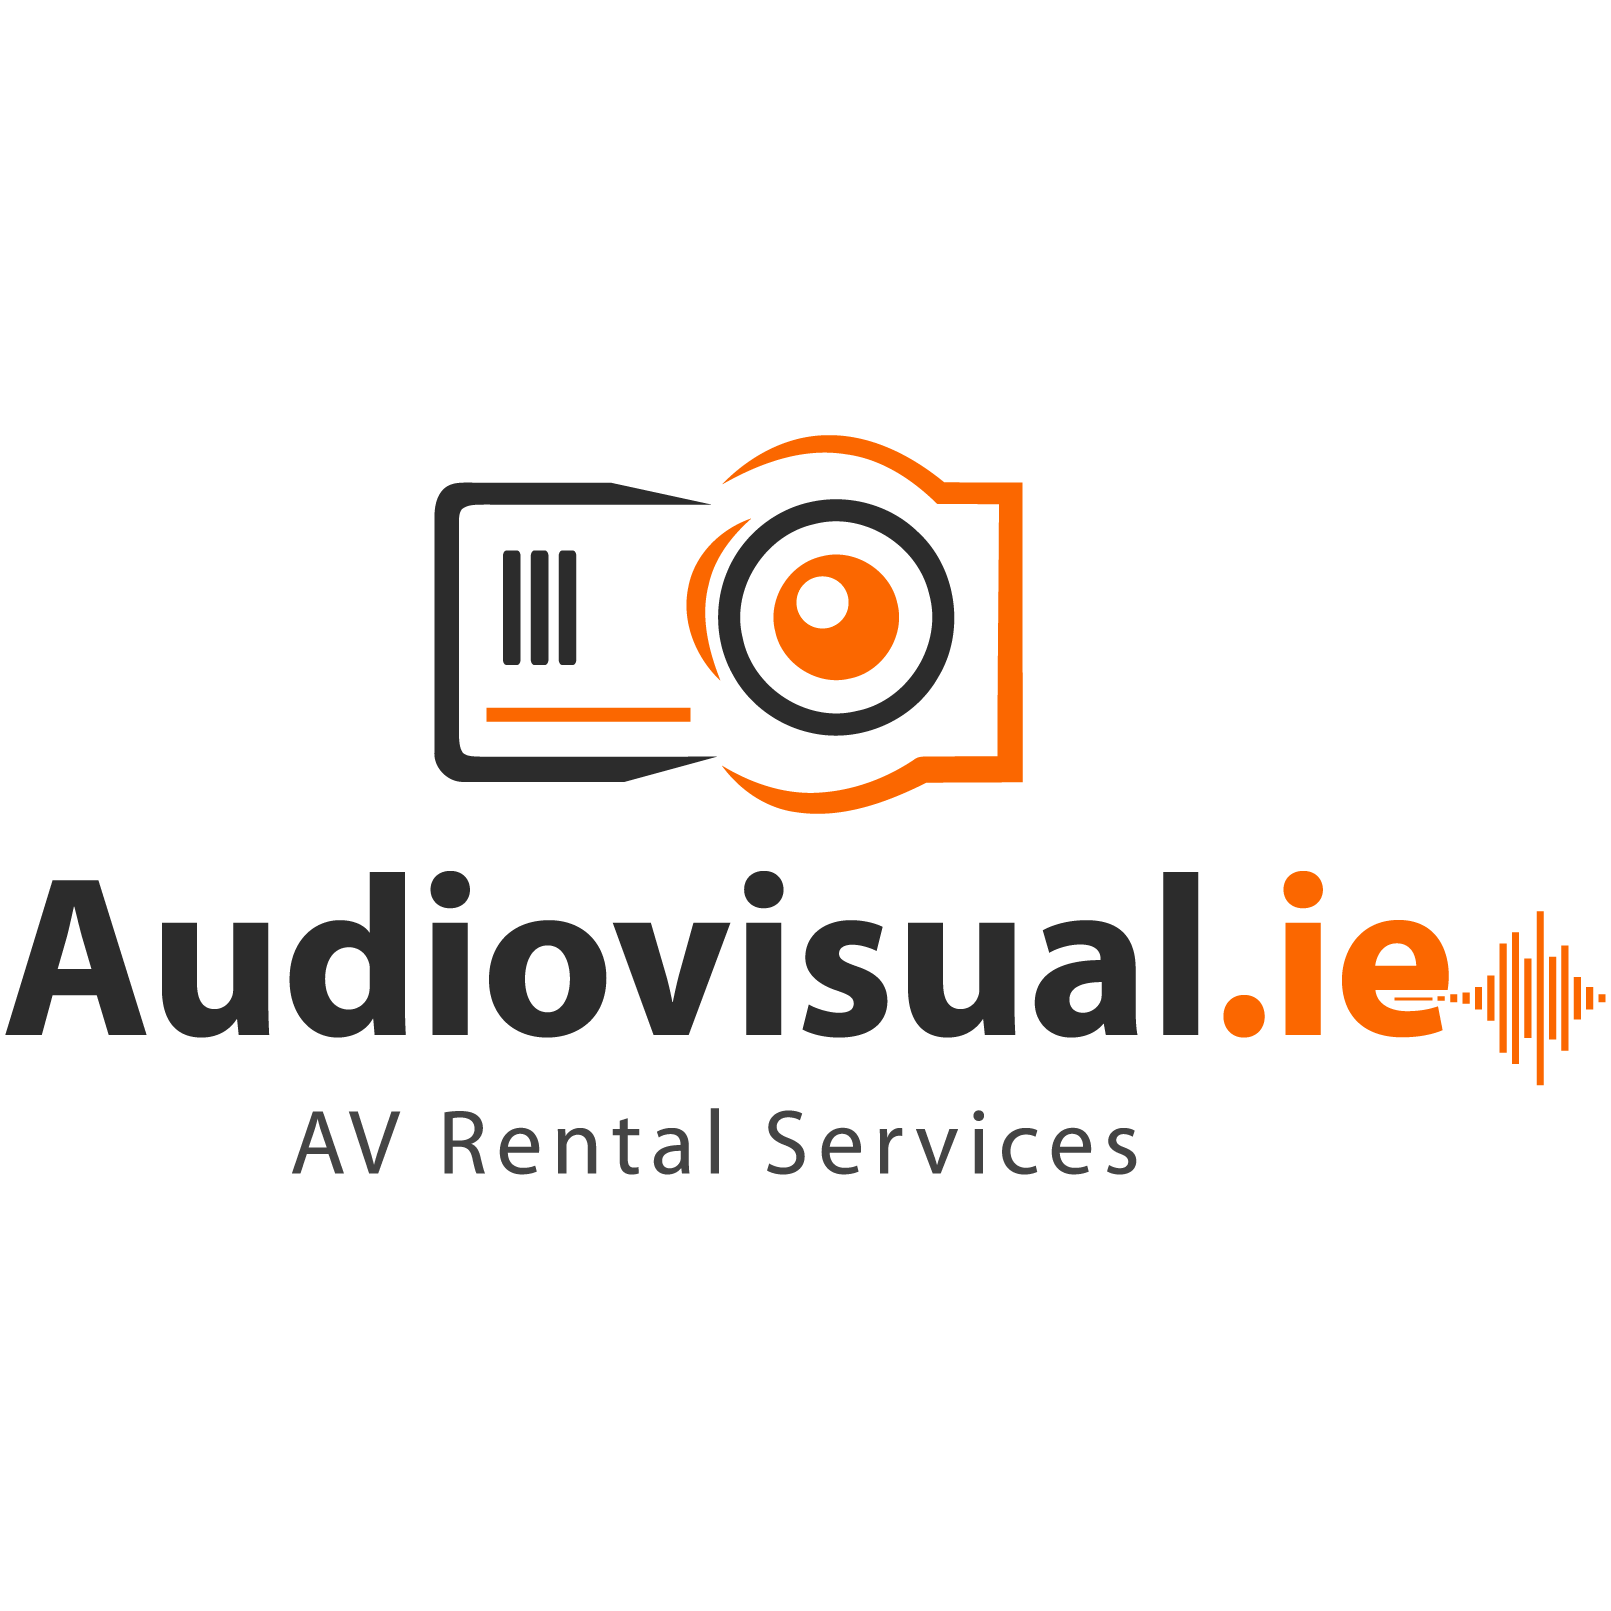 Audiovisual.ie